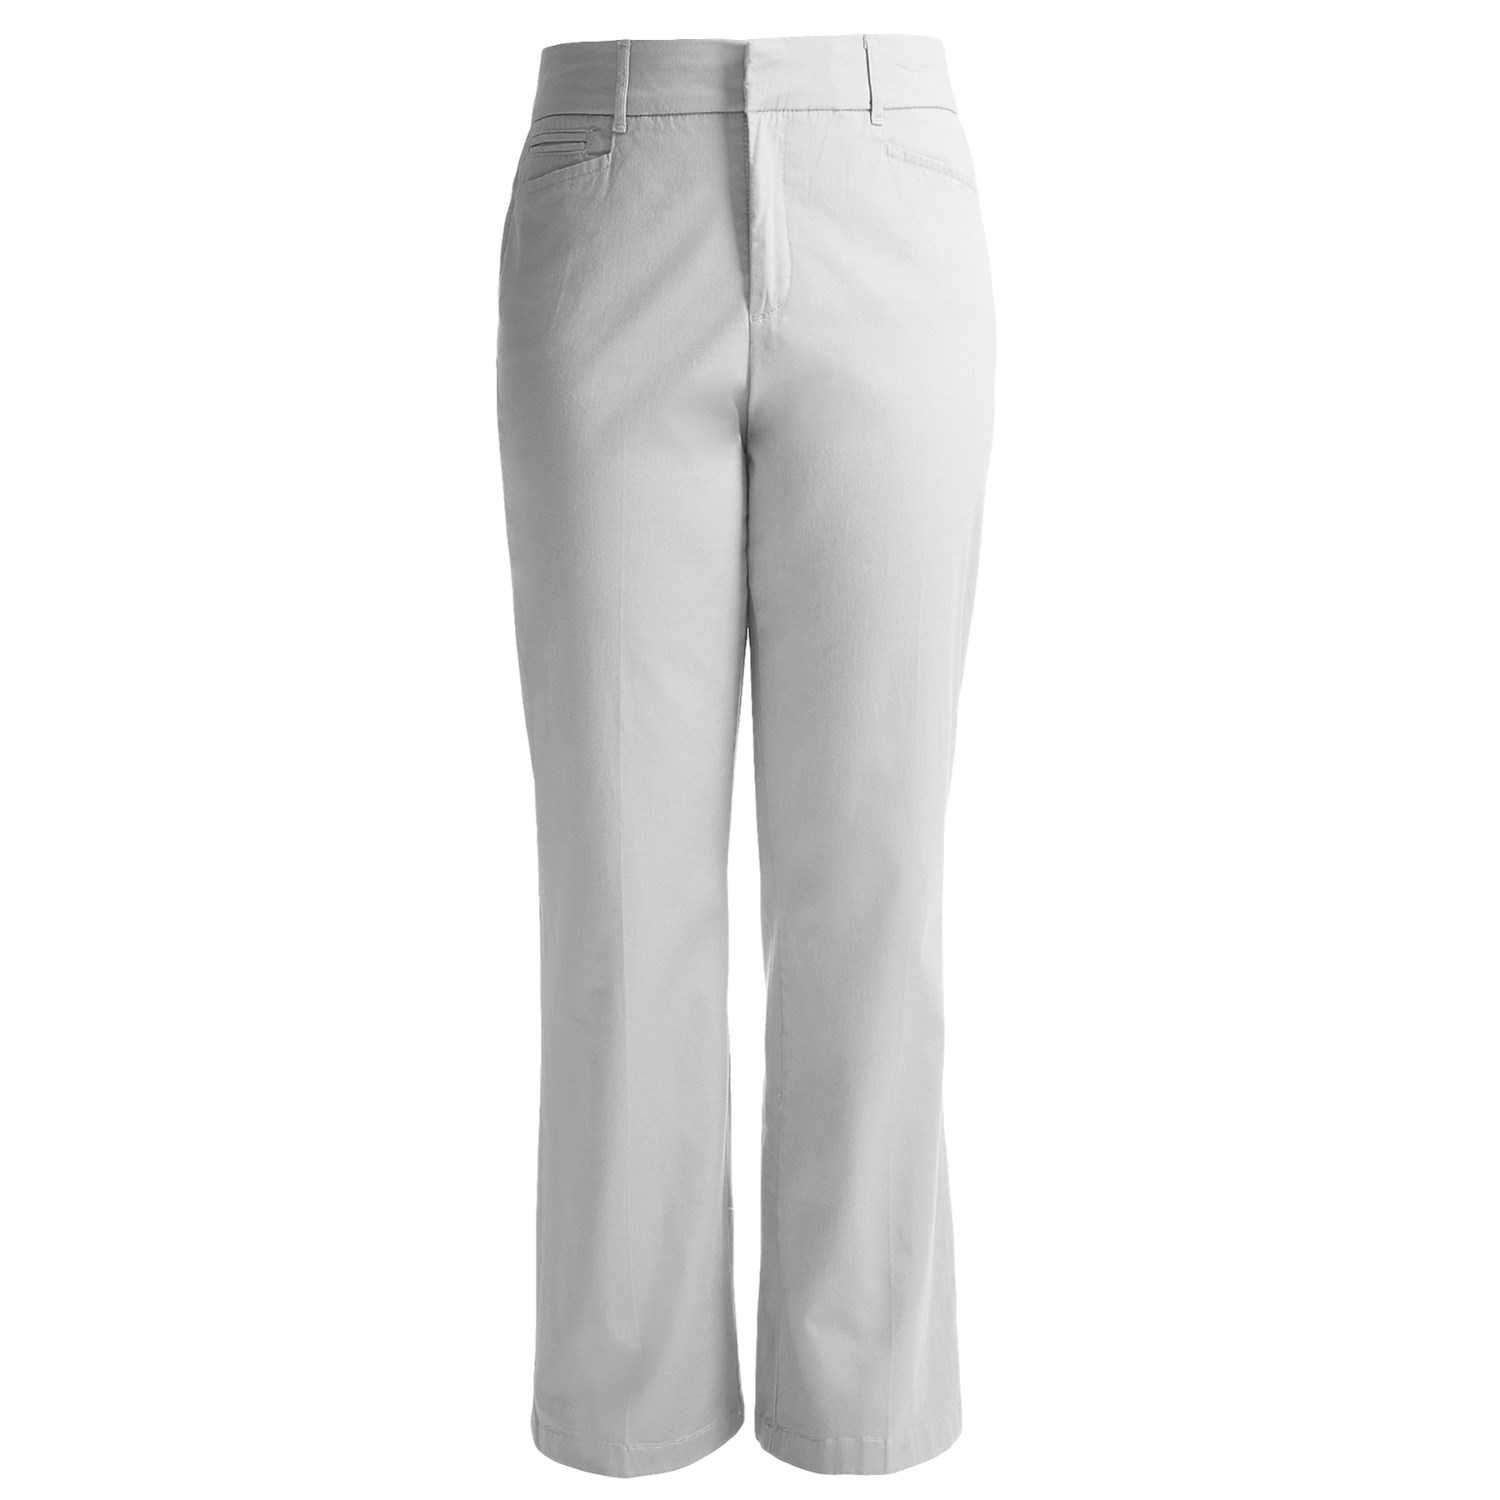 Flat Front Cotton Stretch Pants (For Women) 7771A - Save 90%